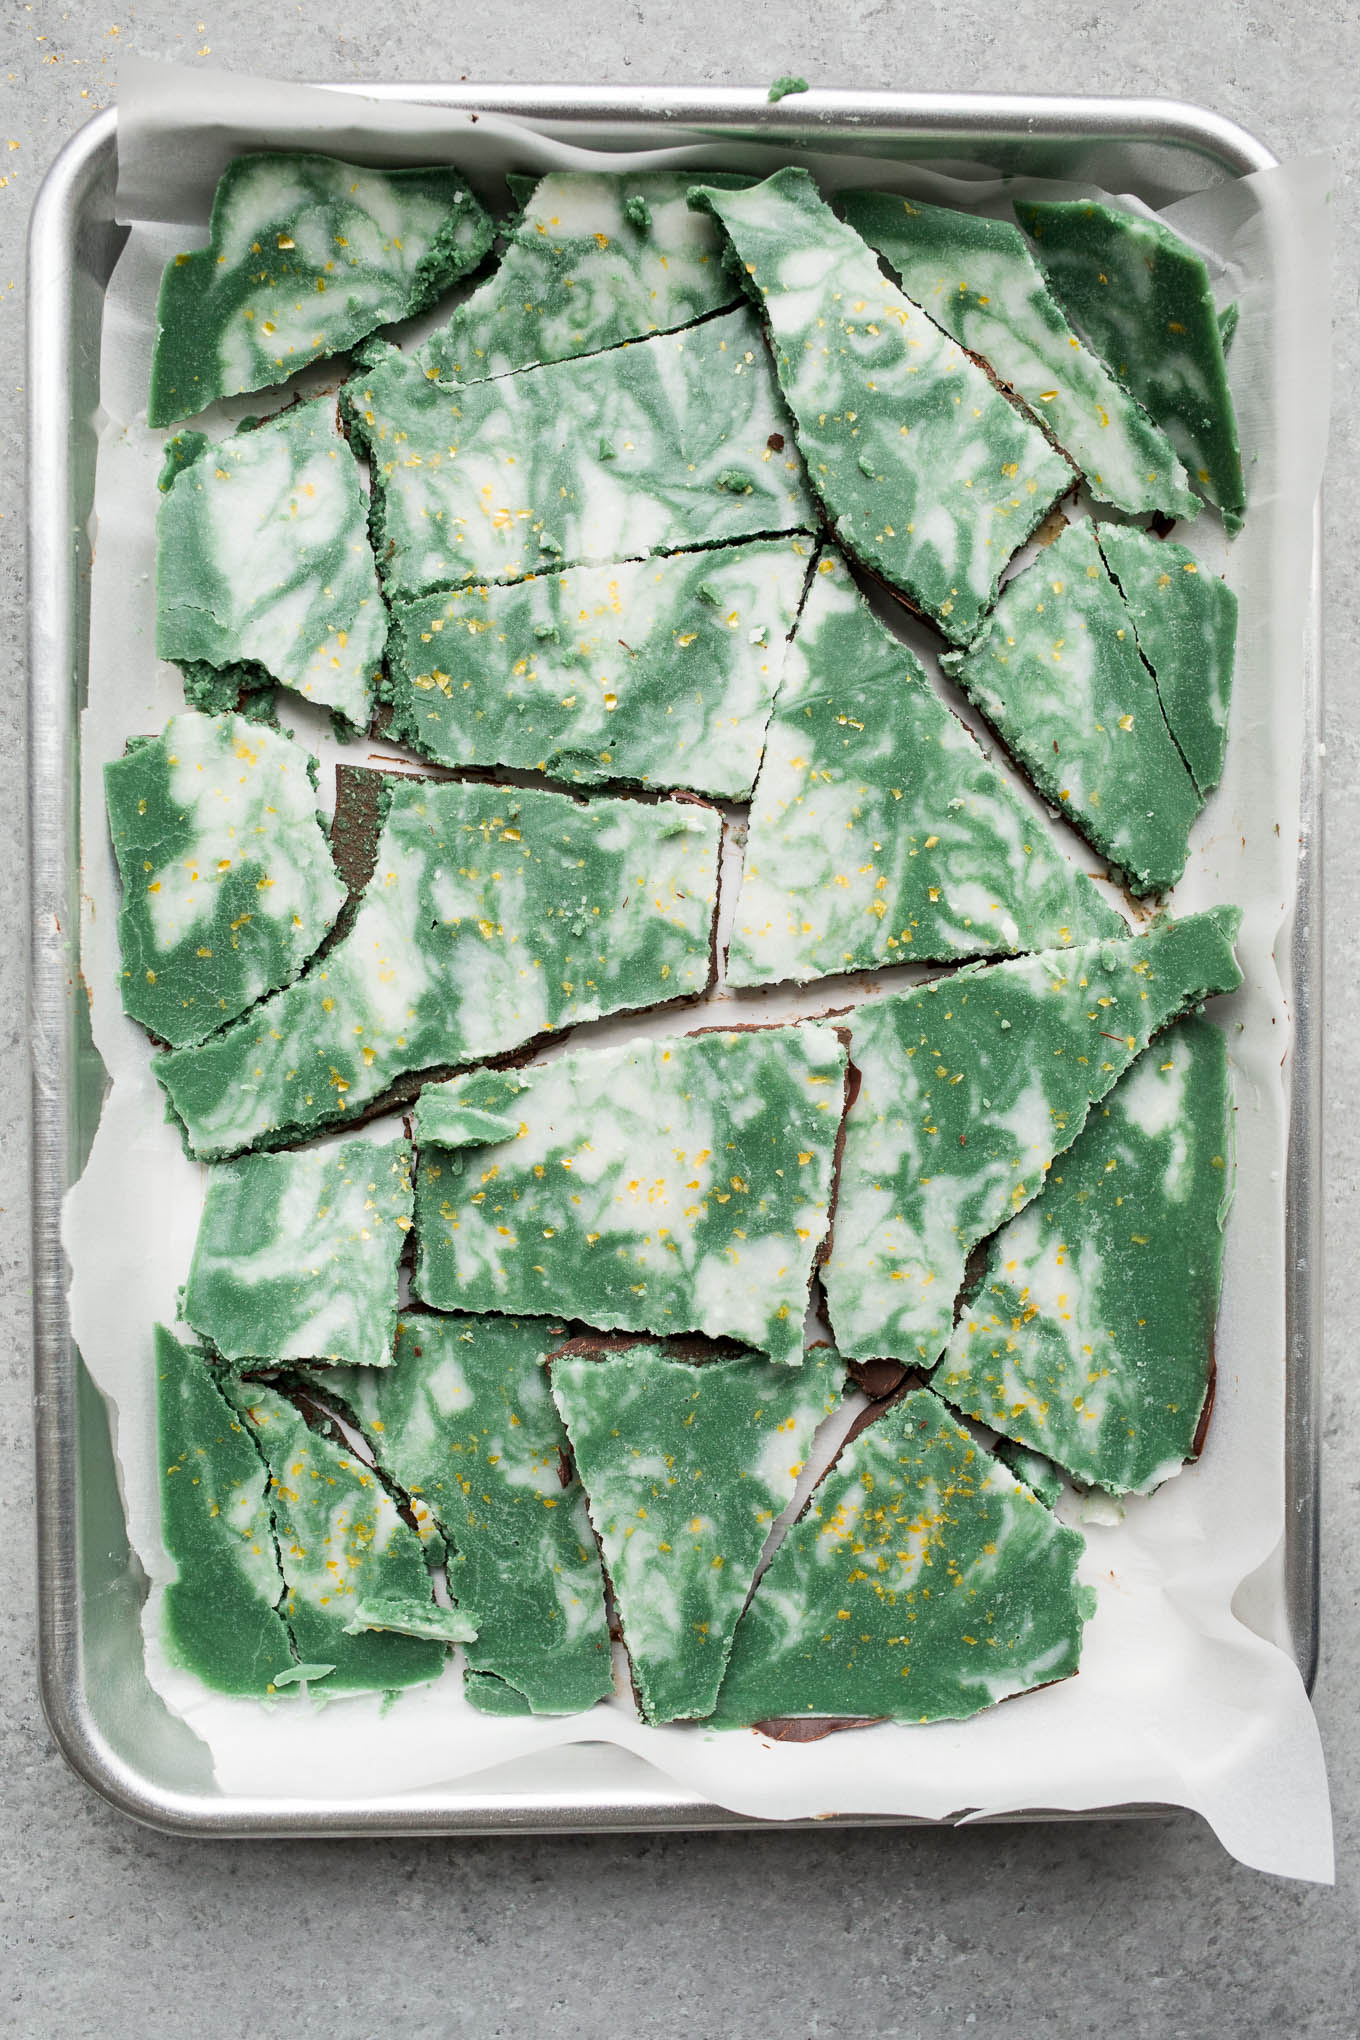 Vegan Mint Chocolate Bark (gluten-free, vegan) | saltedplains.com